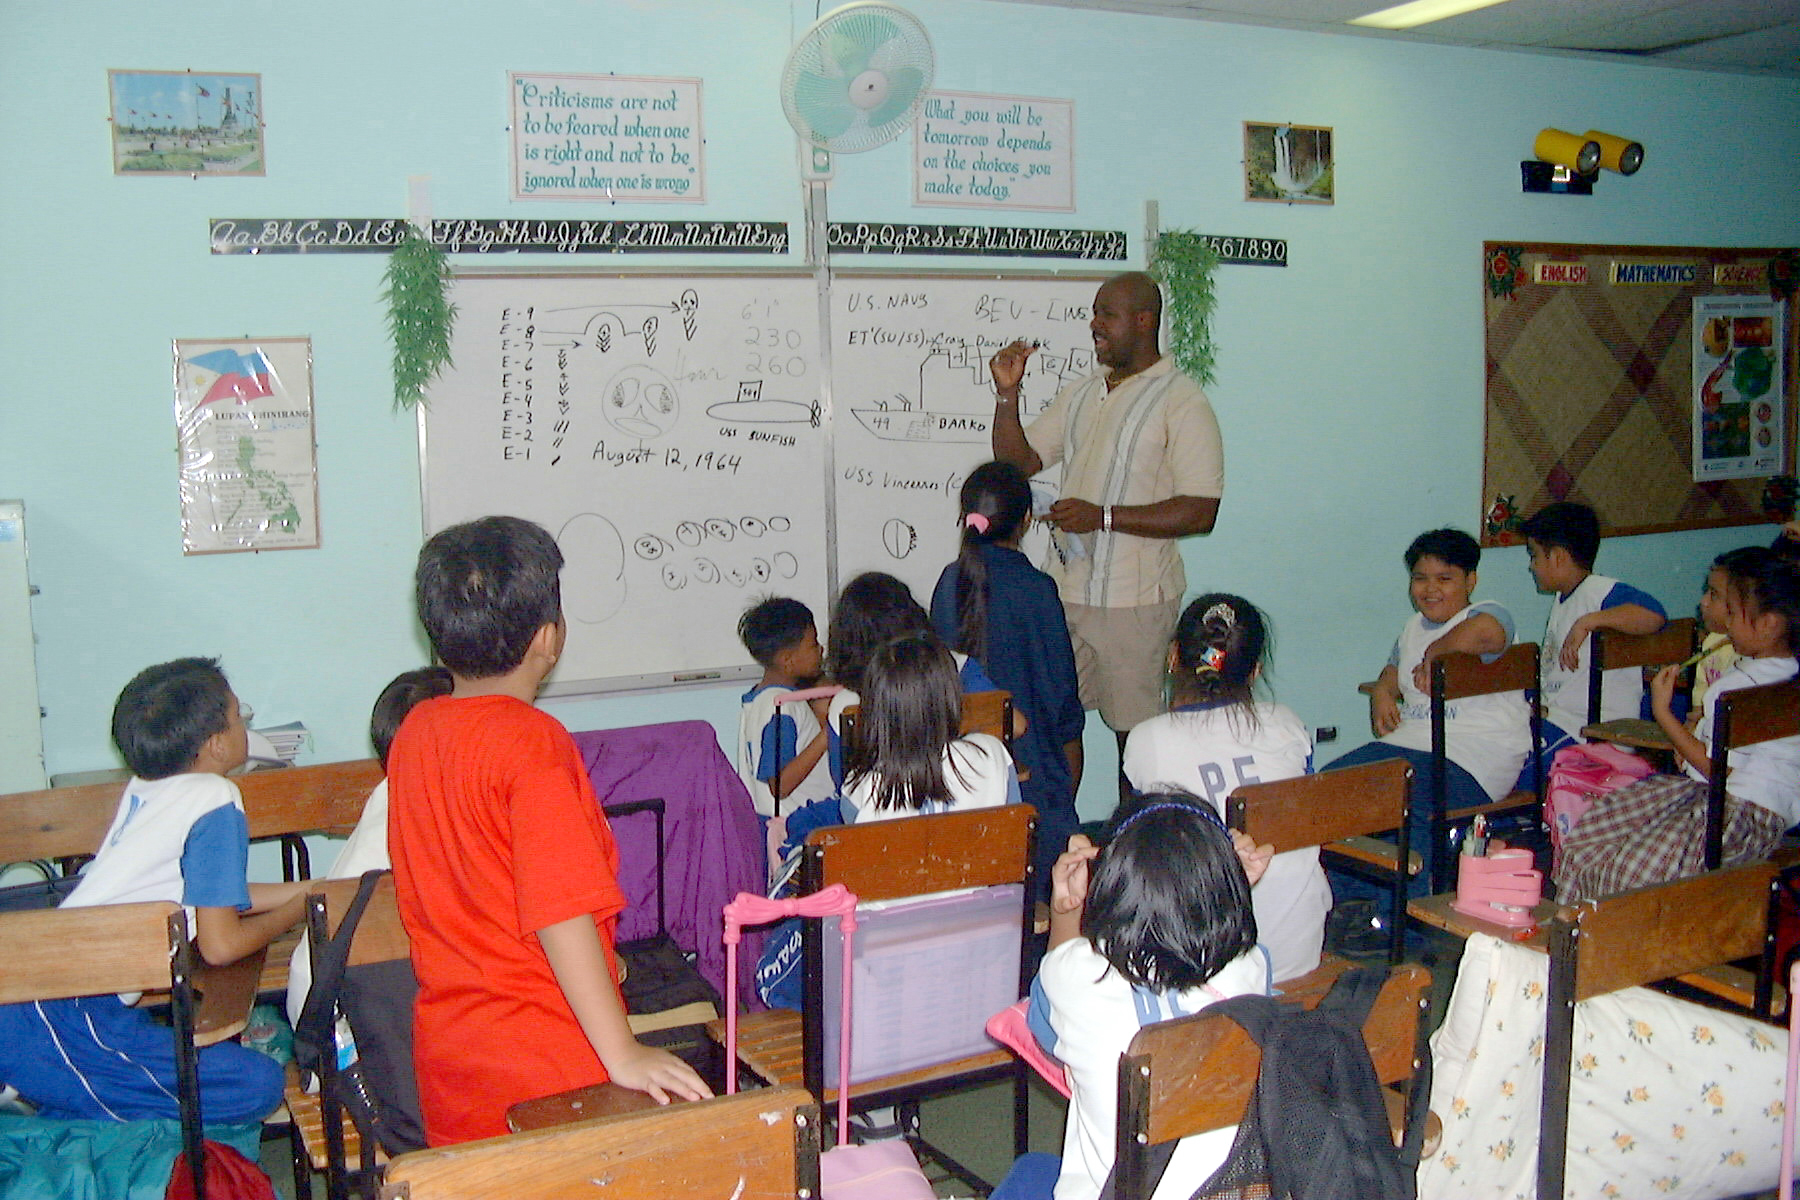 education of gifted children in the united states Gifted education (also known as gifted and talented education (gate), talented and gifted (tag), or g/t) is a broad term for special practices, procedures, and theories used in the education of children who have been identified as gifted or talented.